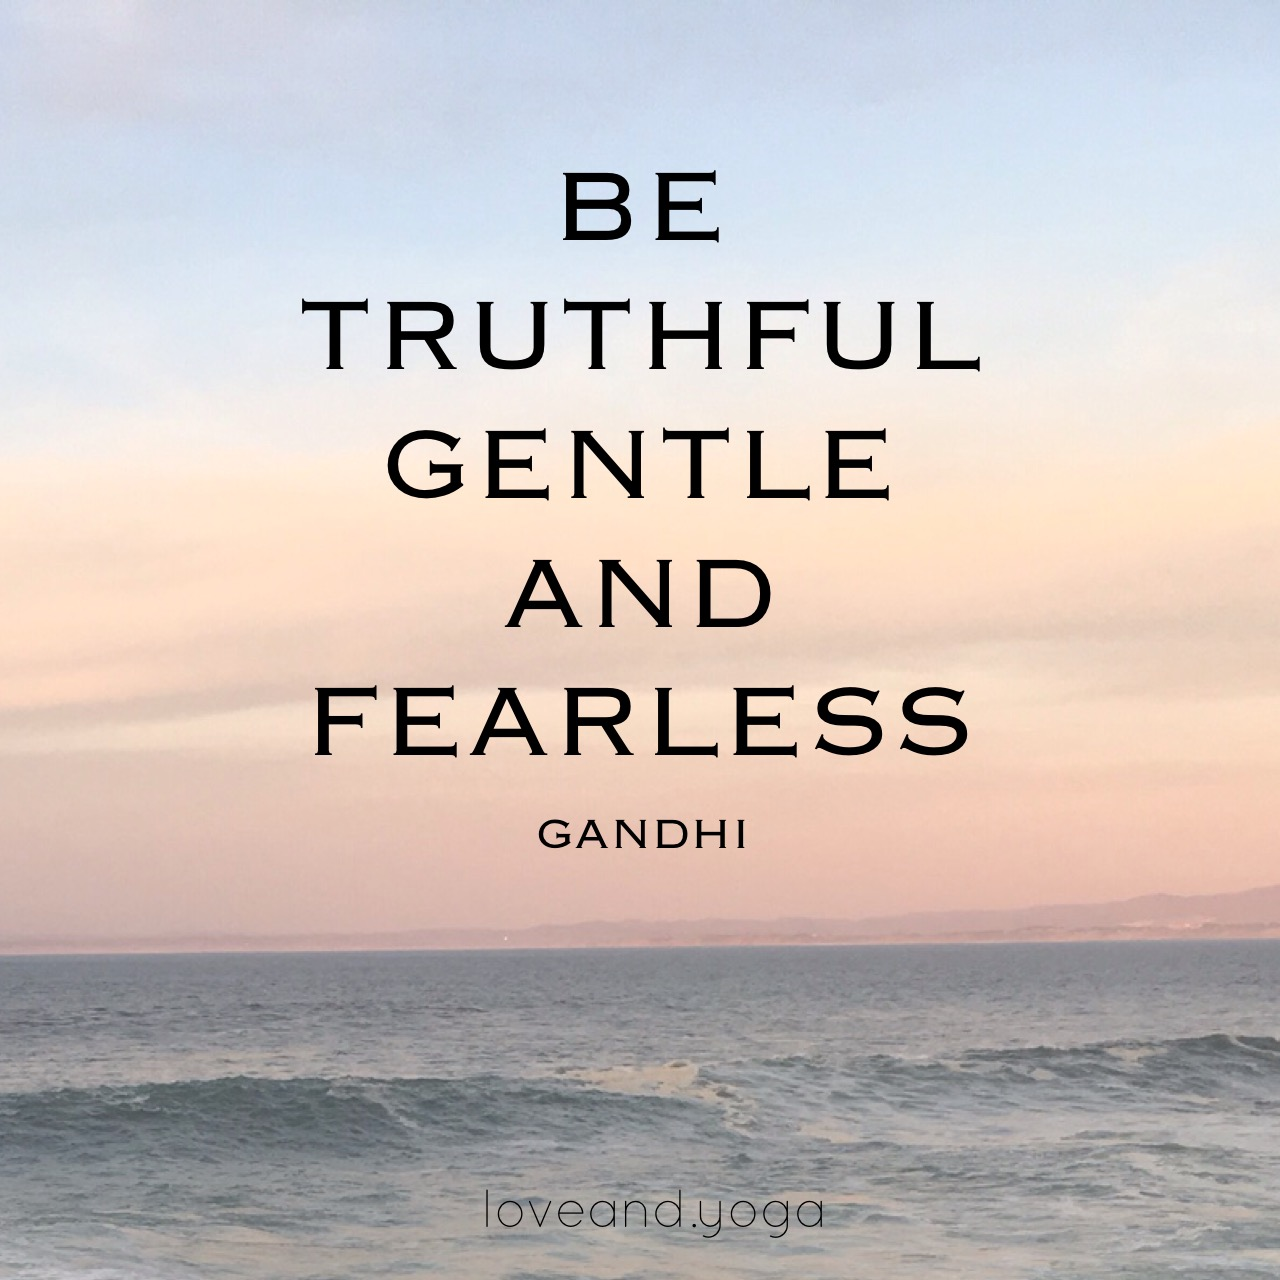 Be truthful gentle and fearless